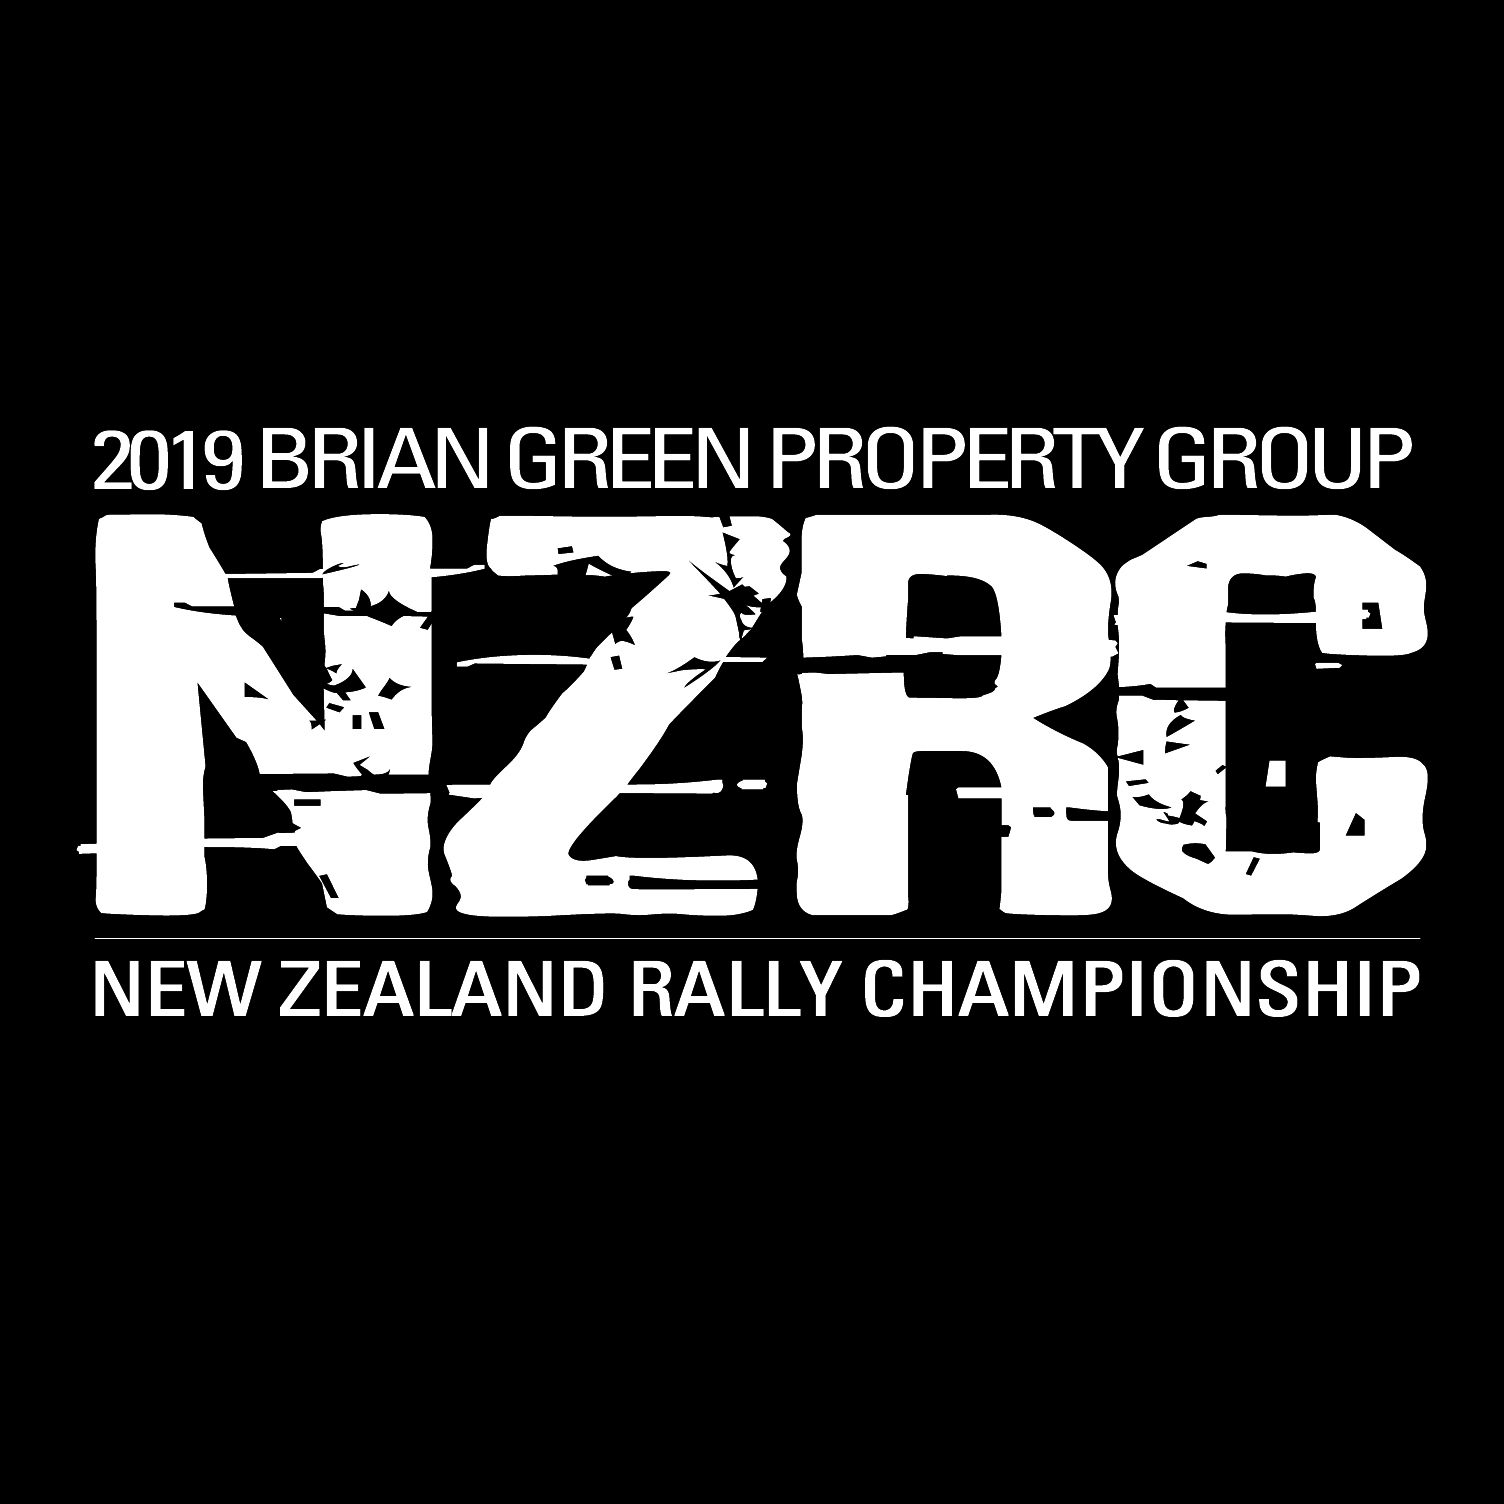 Hyundai New Zealand announced as naming rights sponsor for Coromandel and Raglan Rallies | :: Brian Green Property Group New Zealand Rally Championship ::